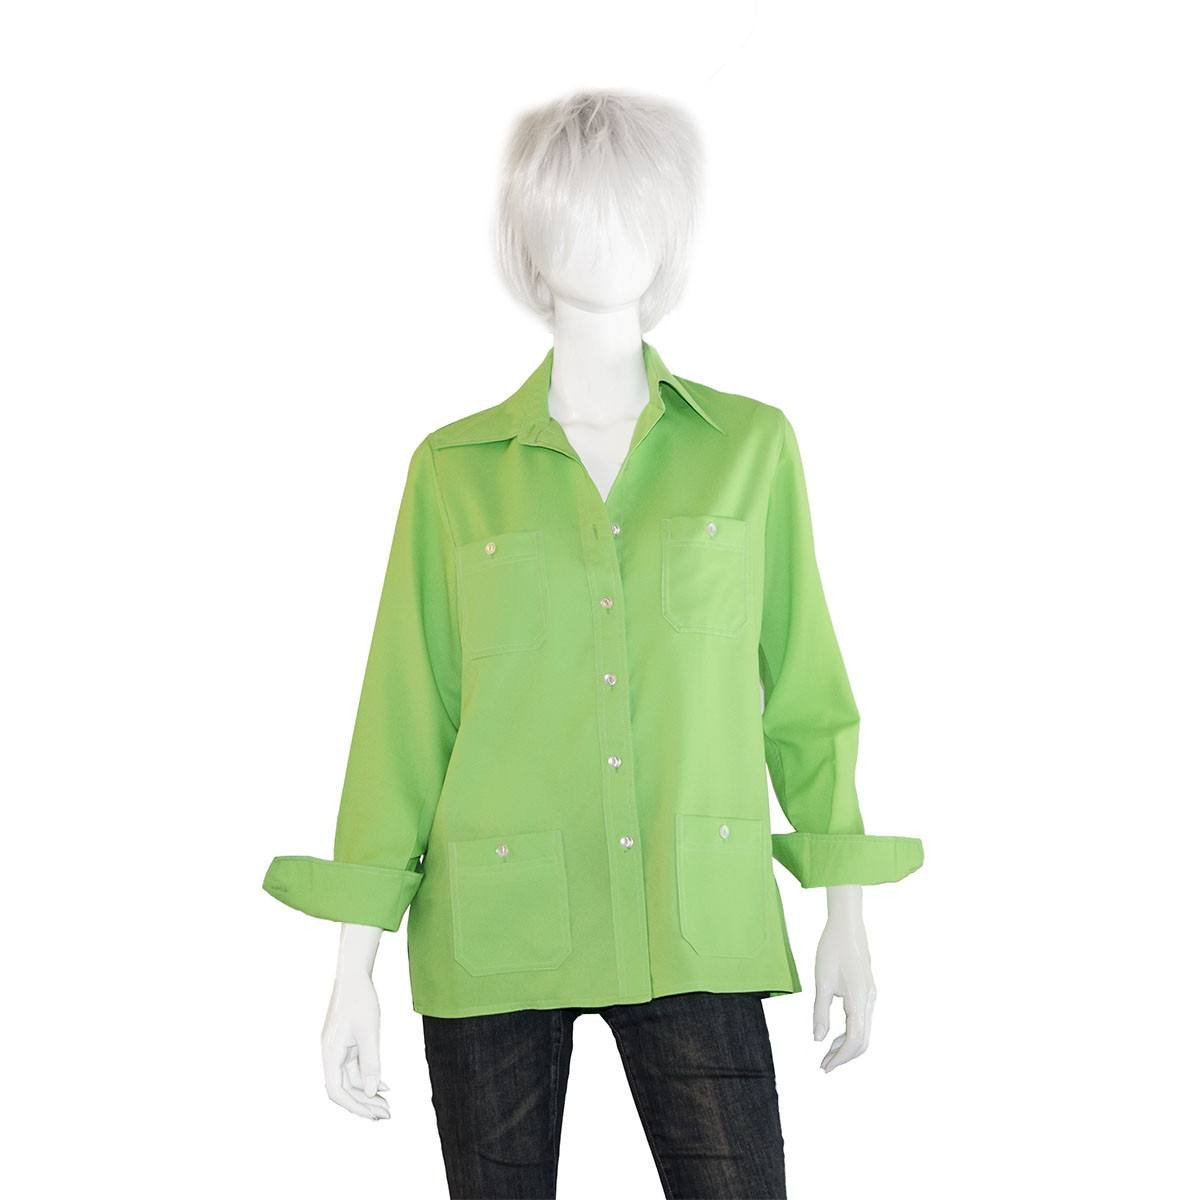 Vintage 1970s Green Polyester Shirt with Top Stitching